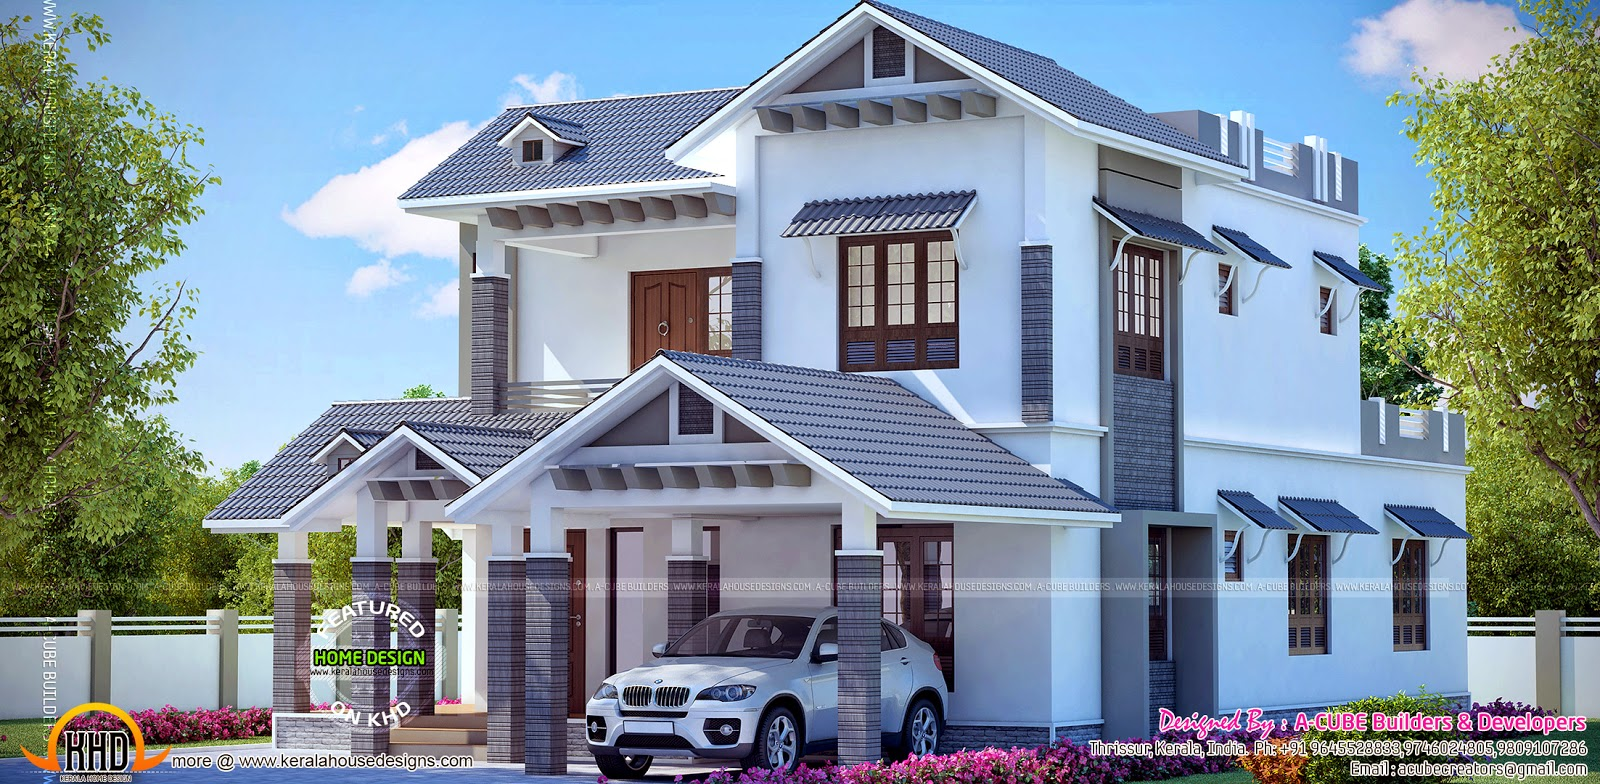 September 2014 kerala home design and floor plans for Kerala model house photos with details